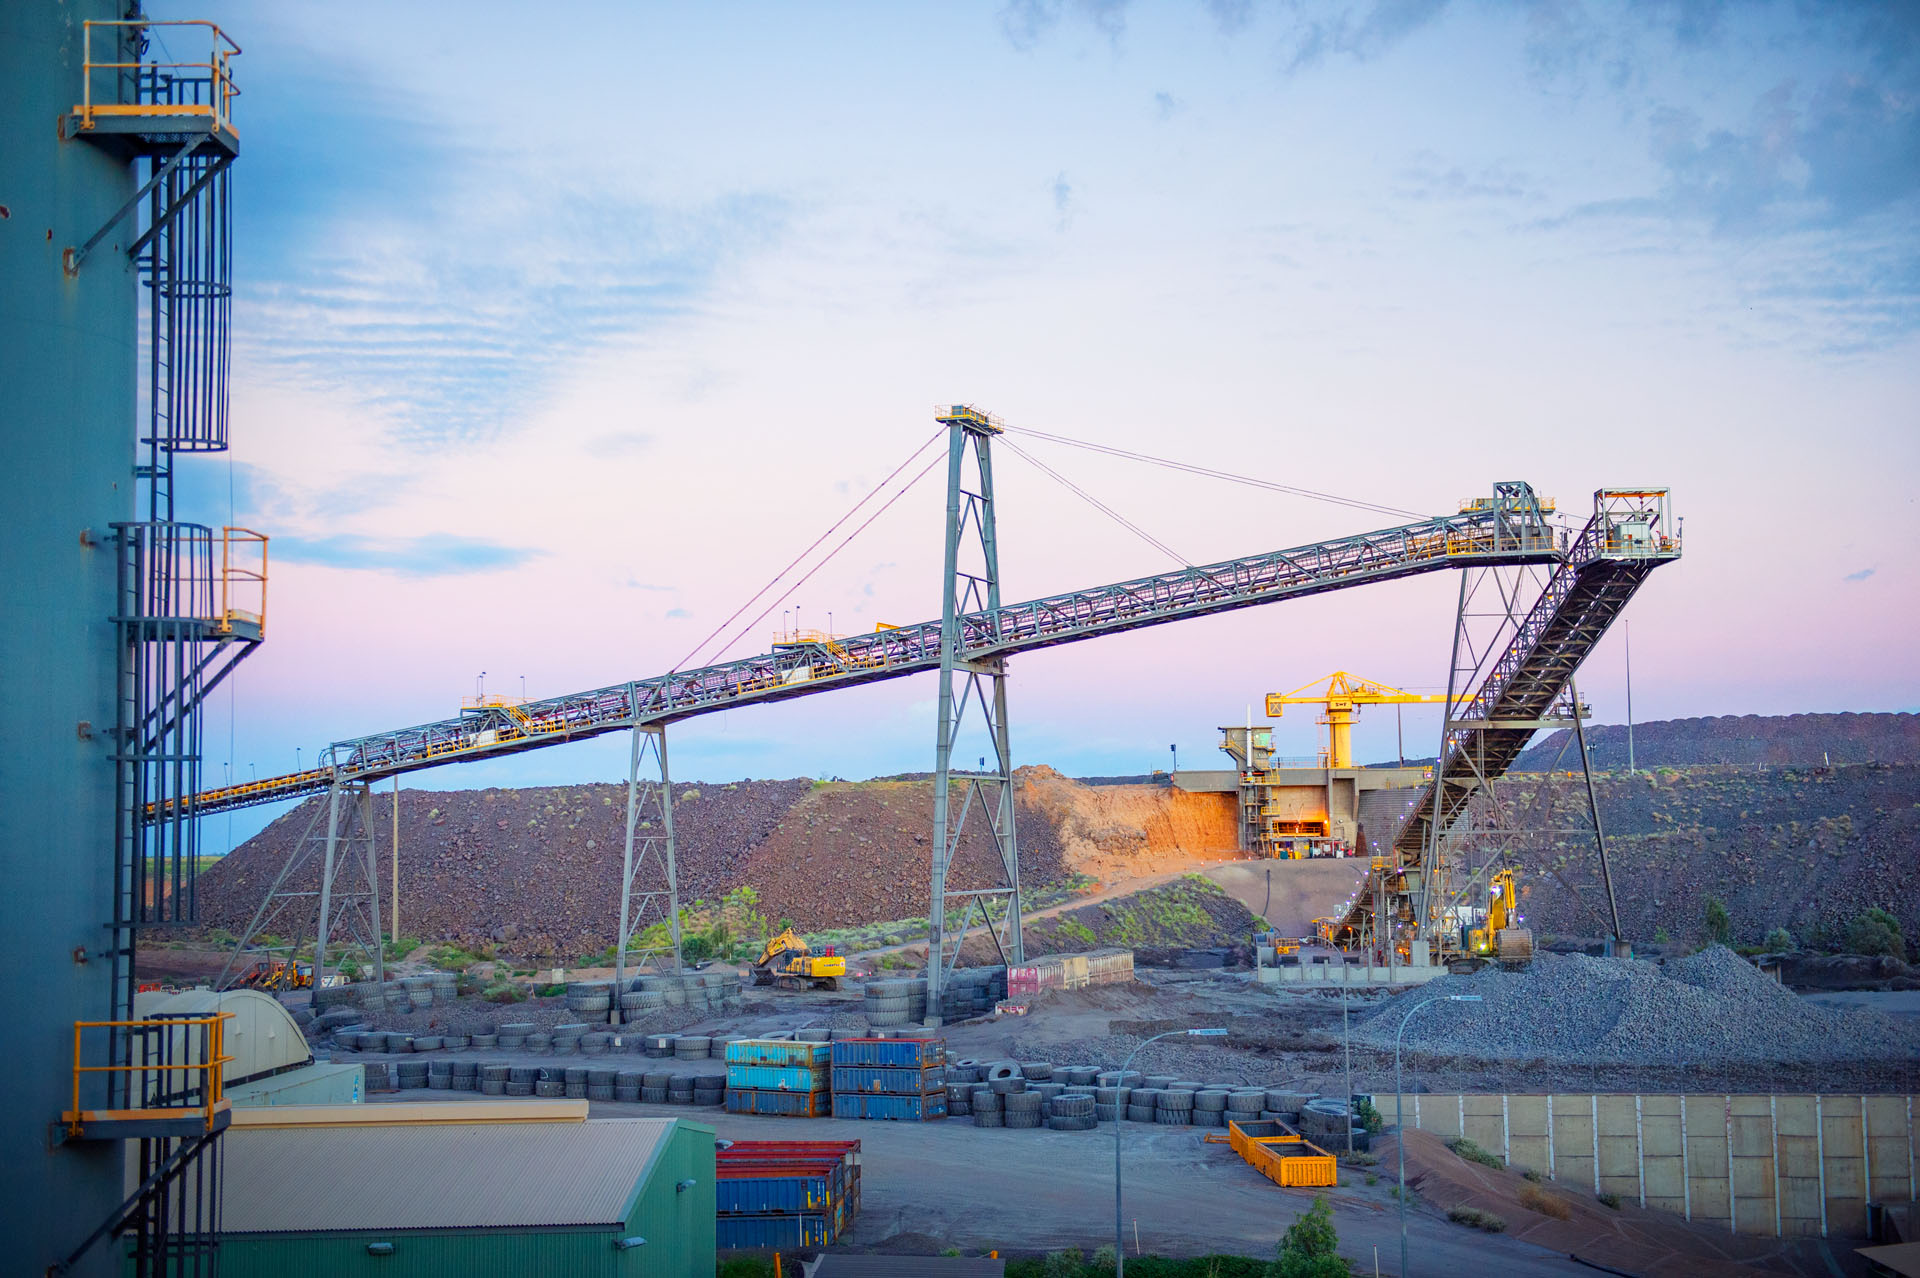 Photography of product, premises and personnel at Glencore's Ernest Henry Mine, Cloncurry